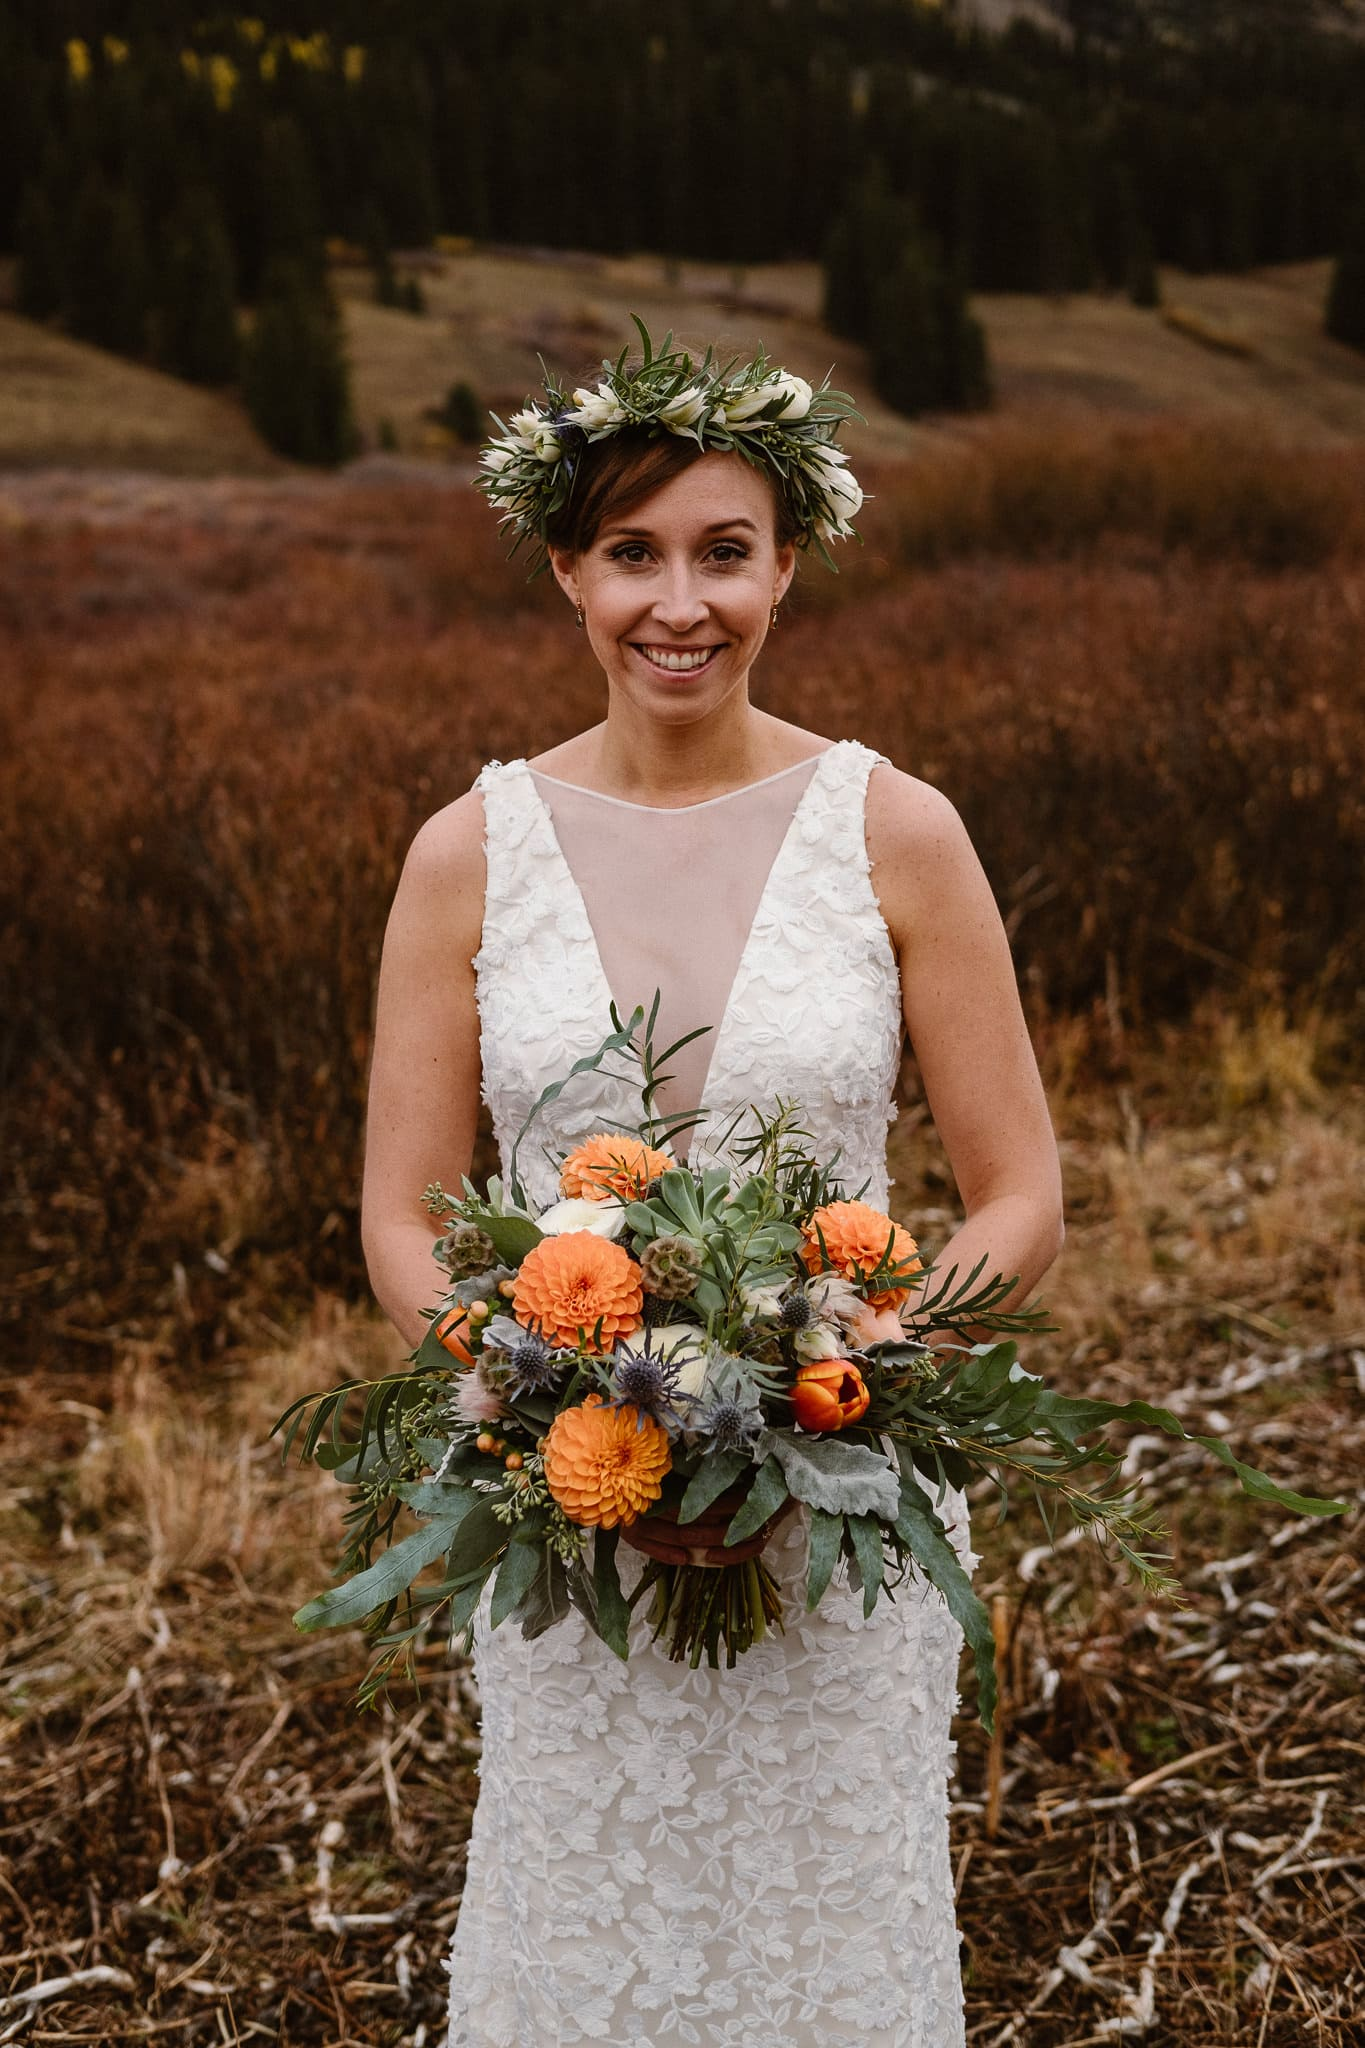 Crested Butte Wedding Photographer, Scarp Ridge Lodge intimate elopement, self solemnized elopement in Colorado, bride and groom portraits, Colorado mountain adventure wedding, bride wearing floral crown, fall color bouquet with orange flowers by From the Ground Up, wedding bouquet